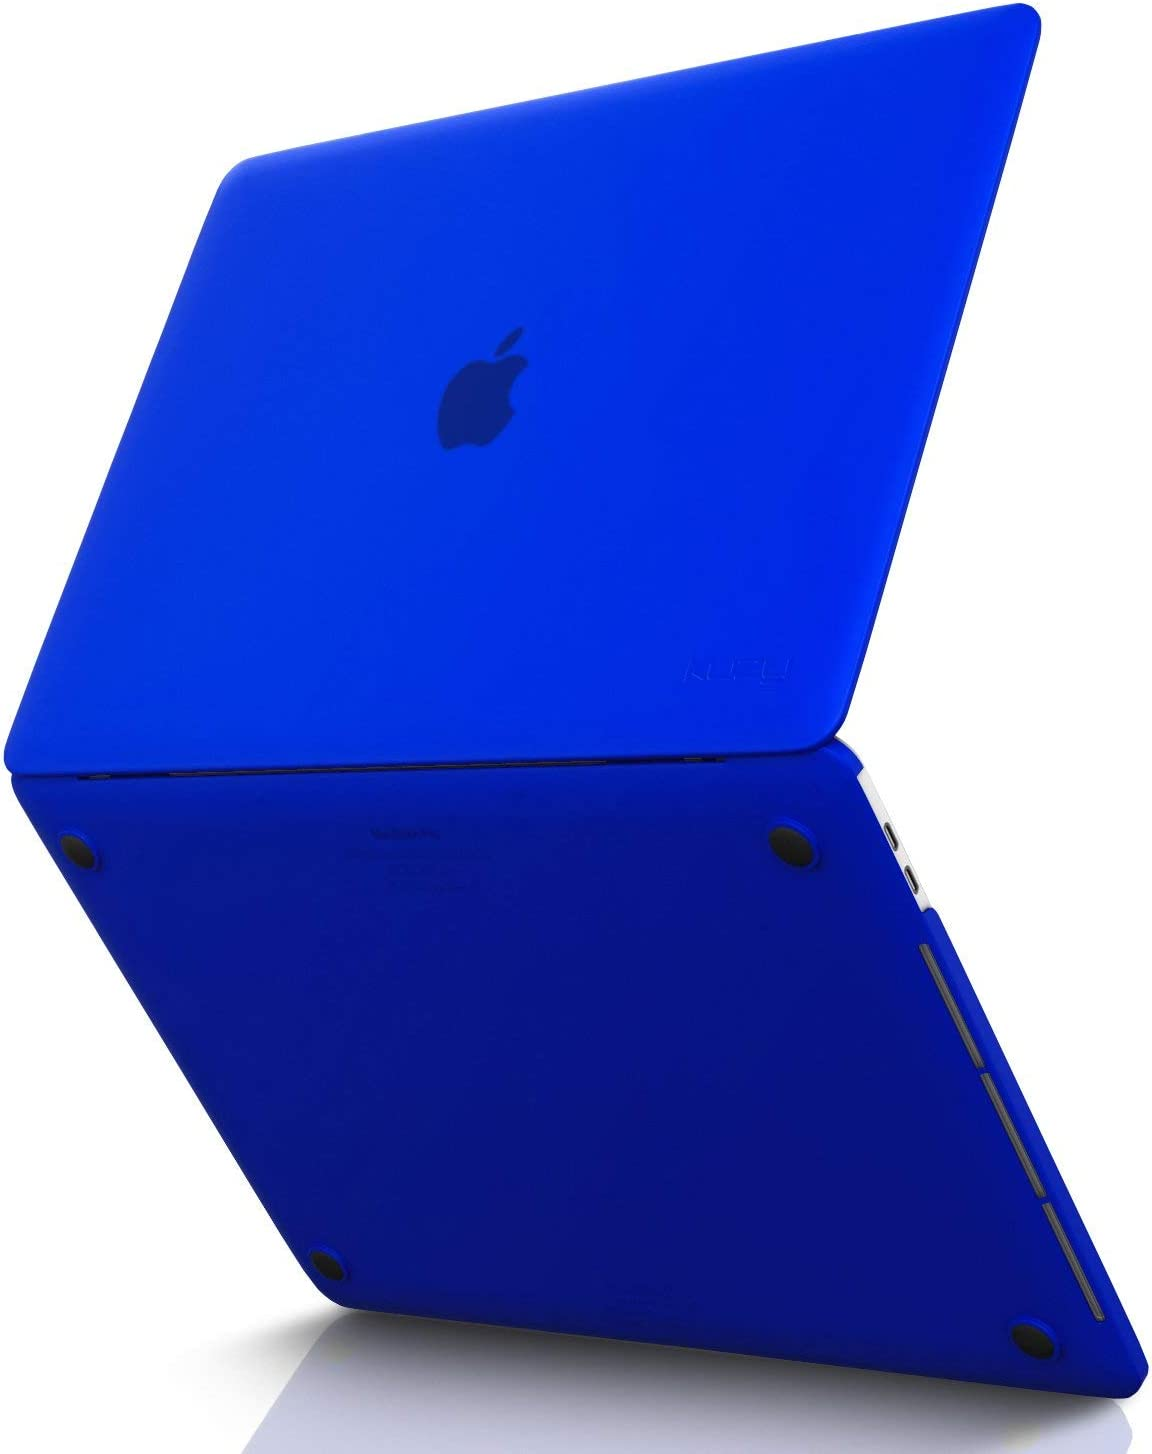 Kuzy MacBook Pro 15 inch Case 2019 2018 2017 2016 Release A1990 A1707, Hard Plastic Shell Cover for Newest MacBook Pro 15 case with Touch Bar Soft Touch - Blue